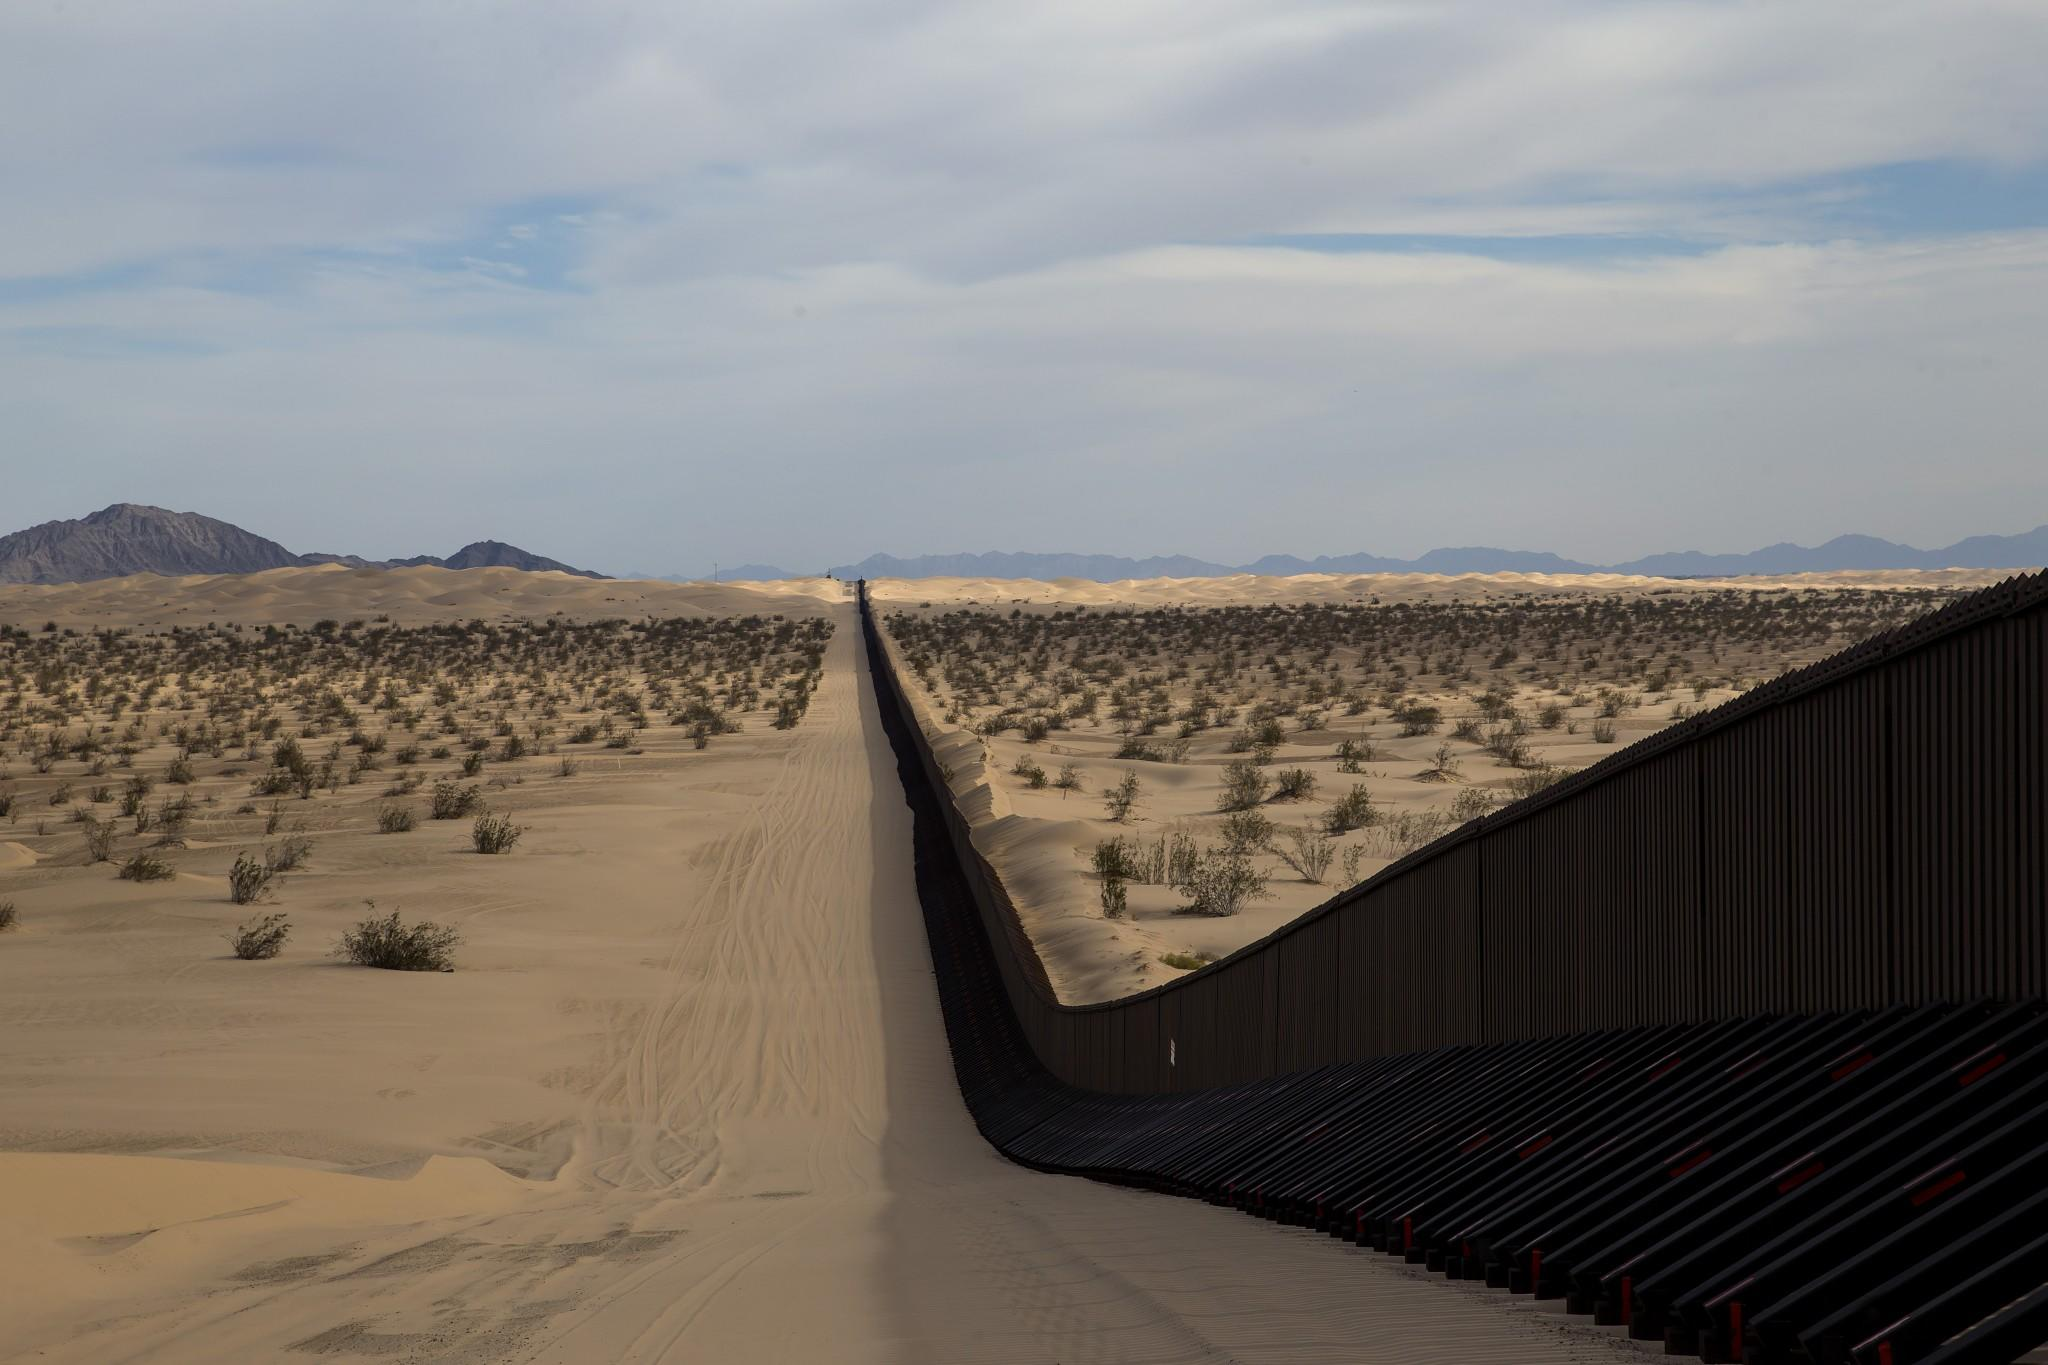 On the border, waiting for the big, beautiful wall